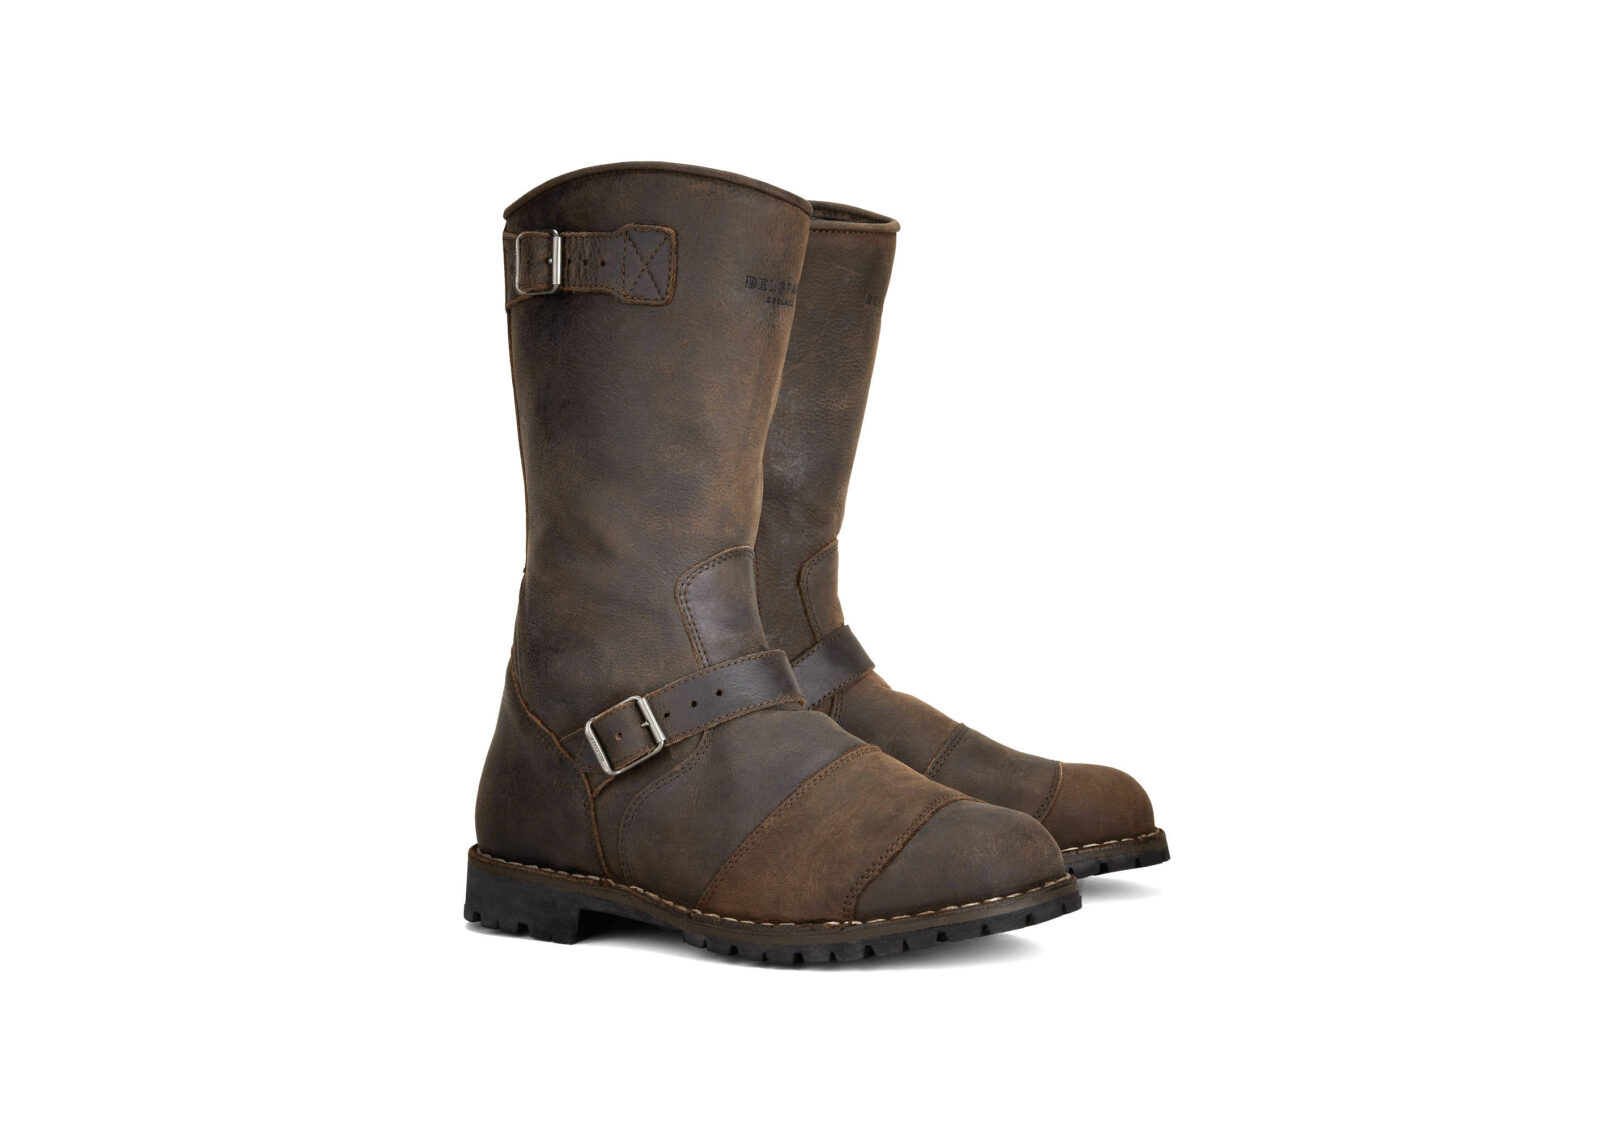 72aef152b1 Belstaff Endurance Boots – Made From Water-Repellent Buffalo Leather